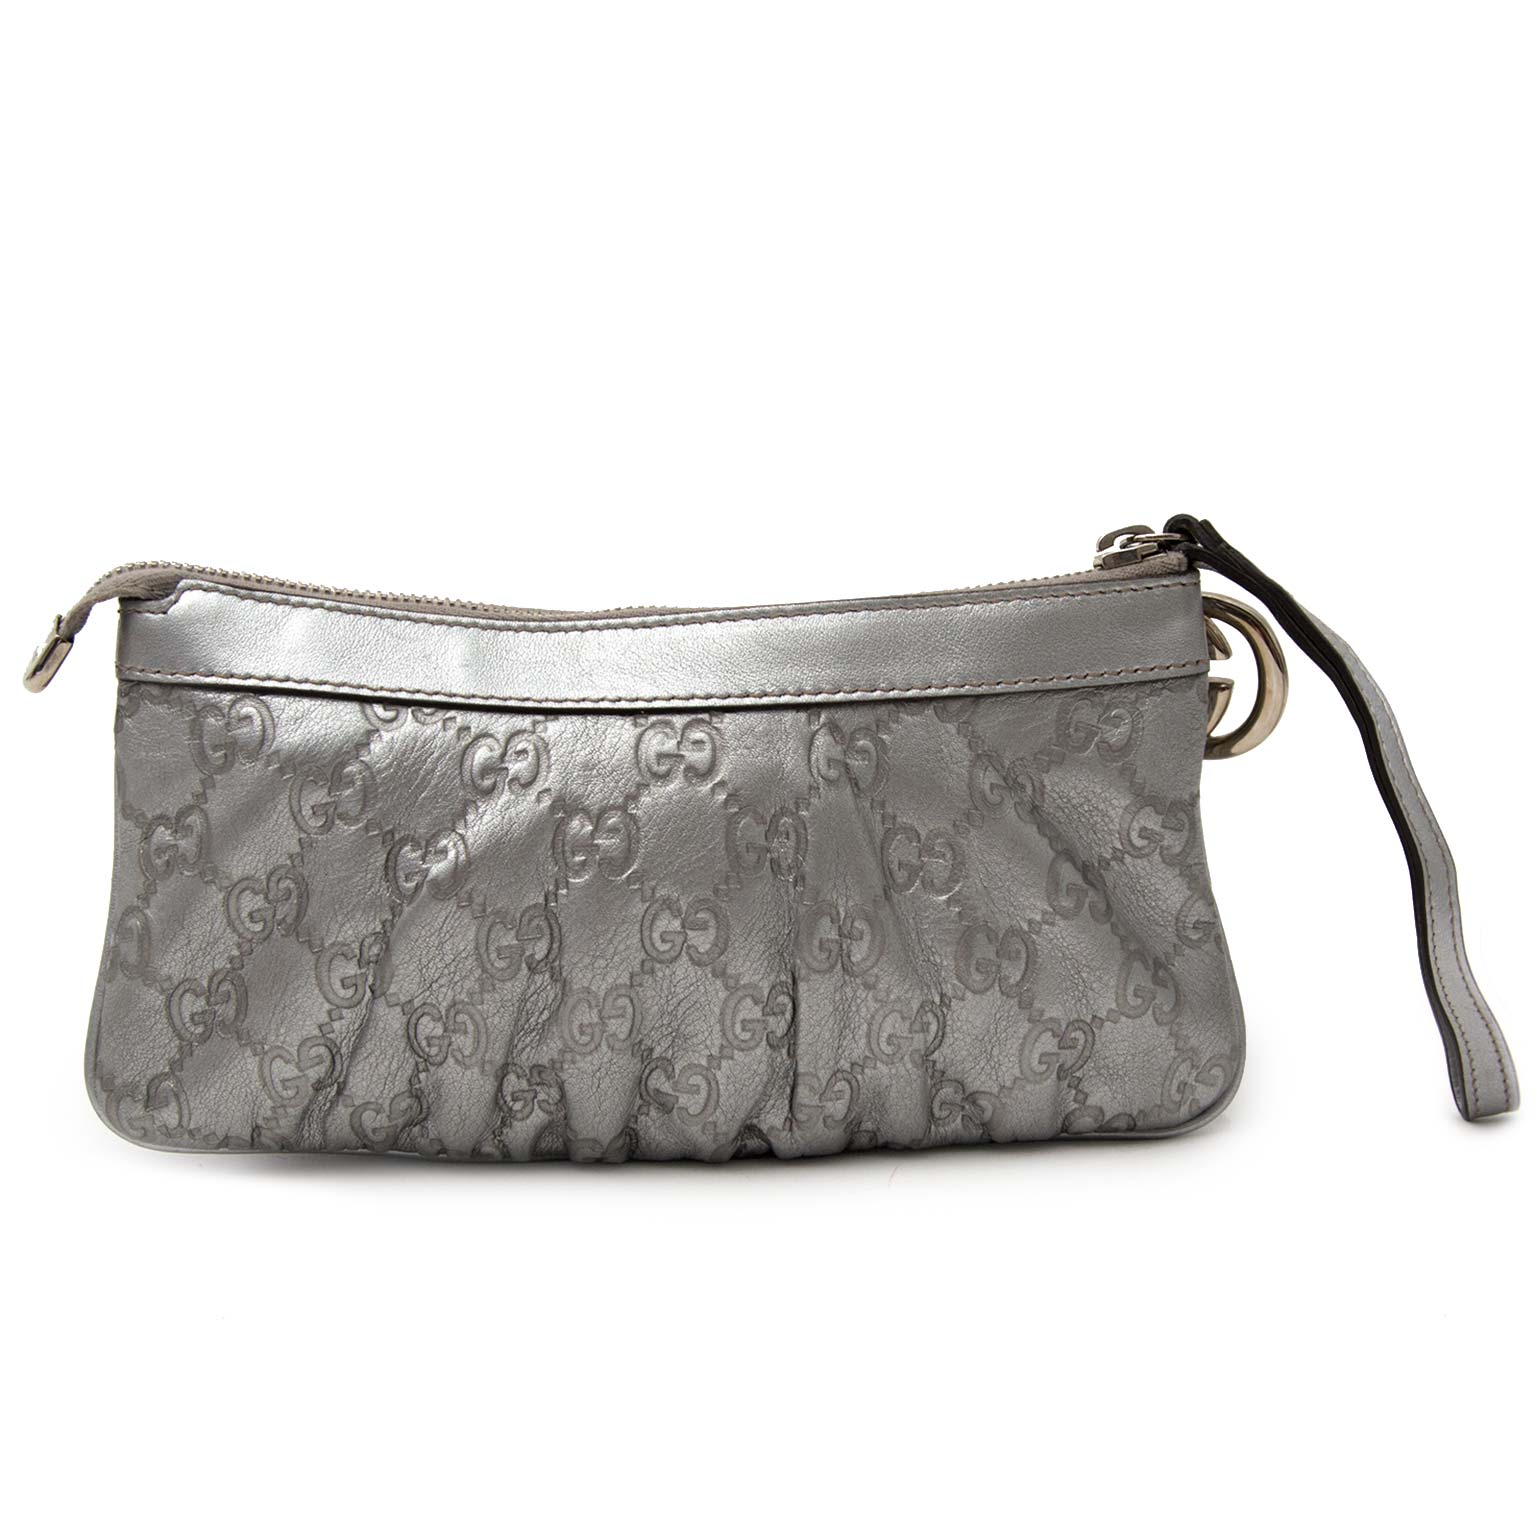 0e8bc92560d2 Buy your authentic Gucci Silver Monogram Pochette Koop uw Gucci Silver  Monogram Pochette